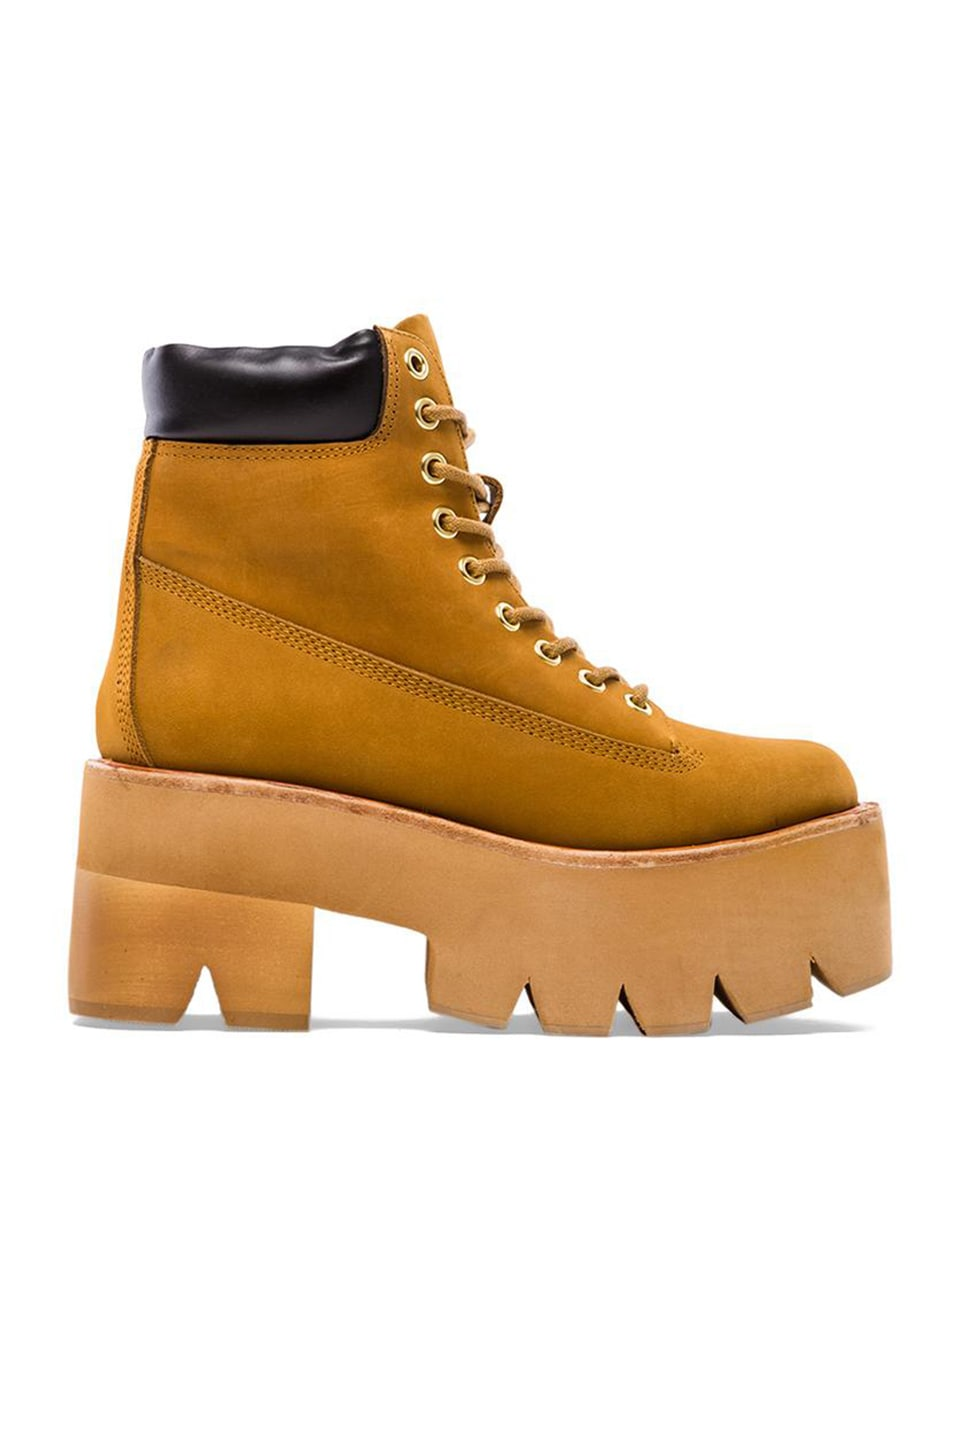 Jeffrey Campbell Nirvana Boot in Wheat